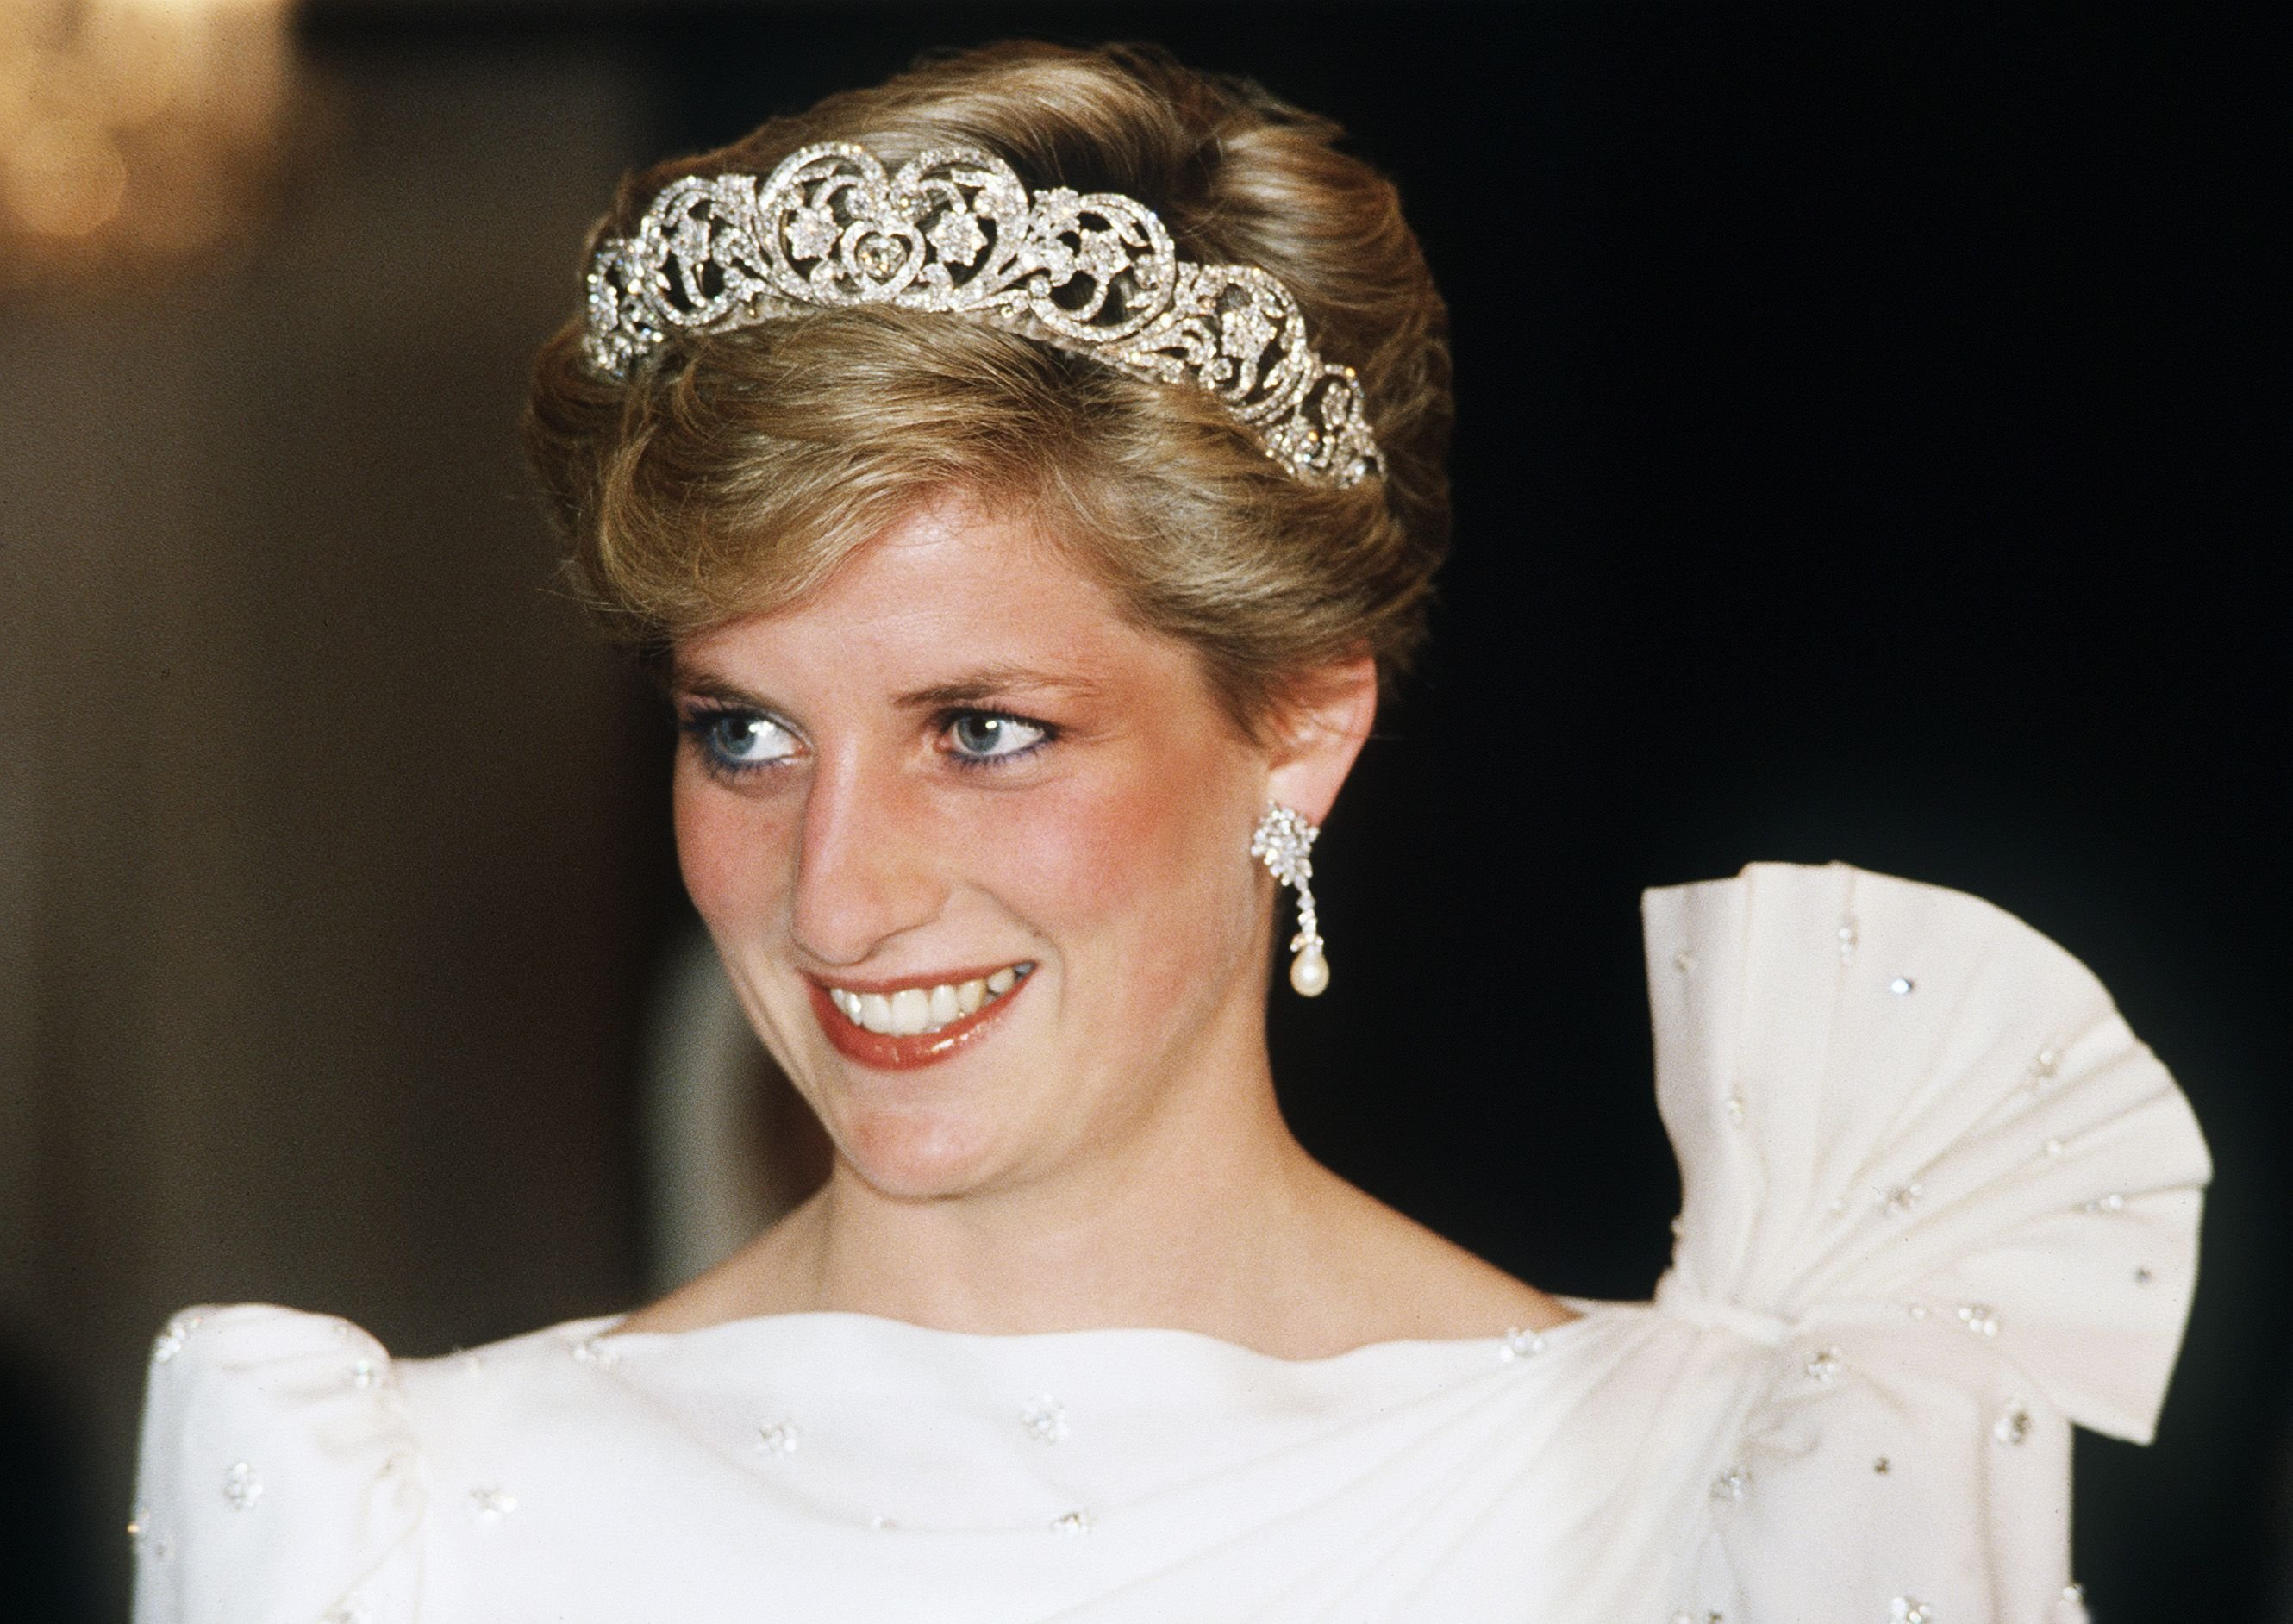 Princess Diana at a State Banquet on November 16, 1986 | Photo: Getty Images